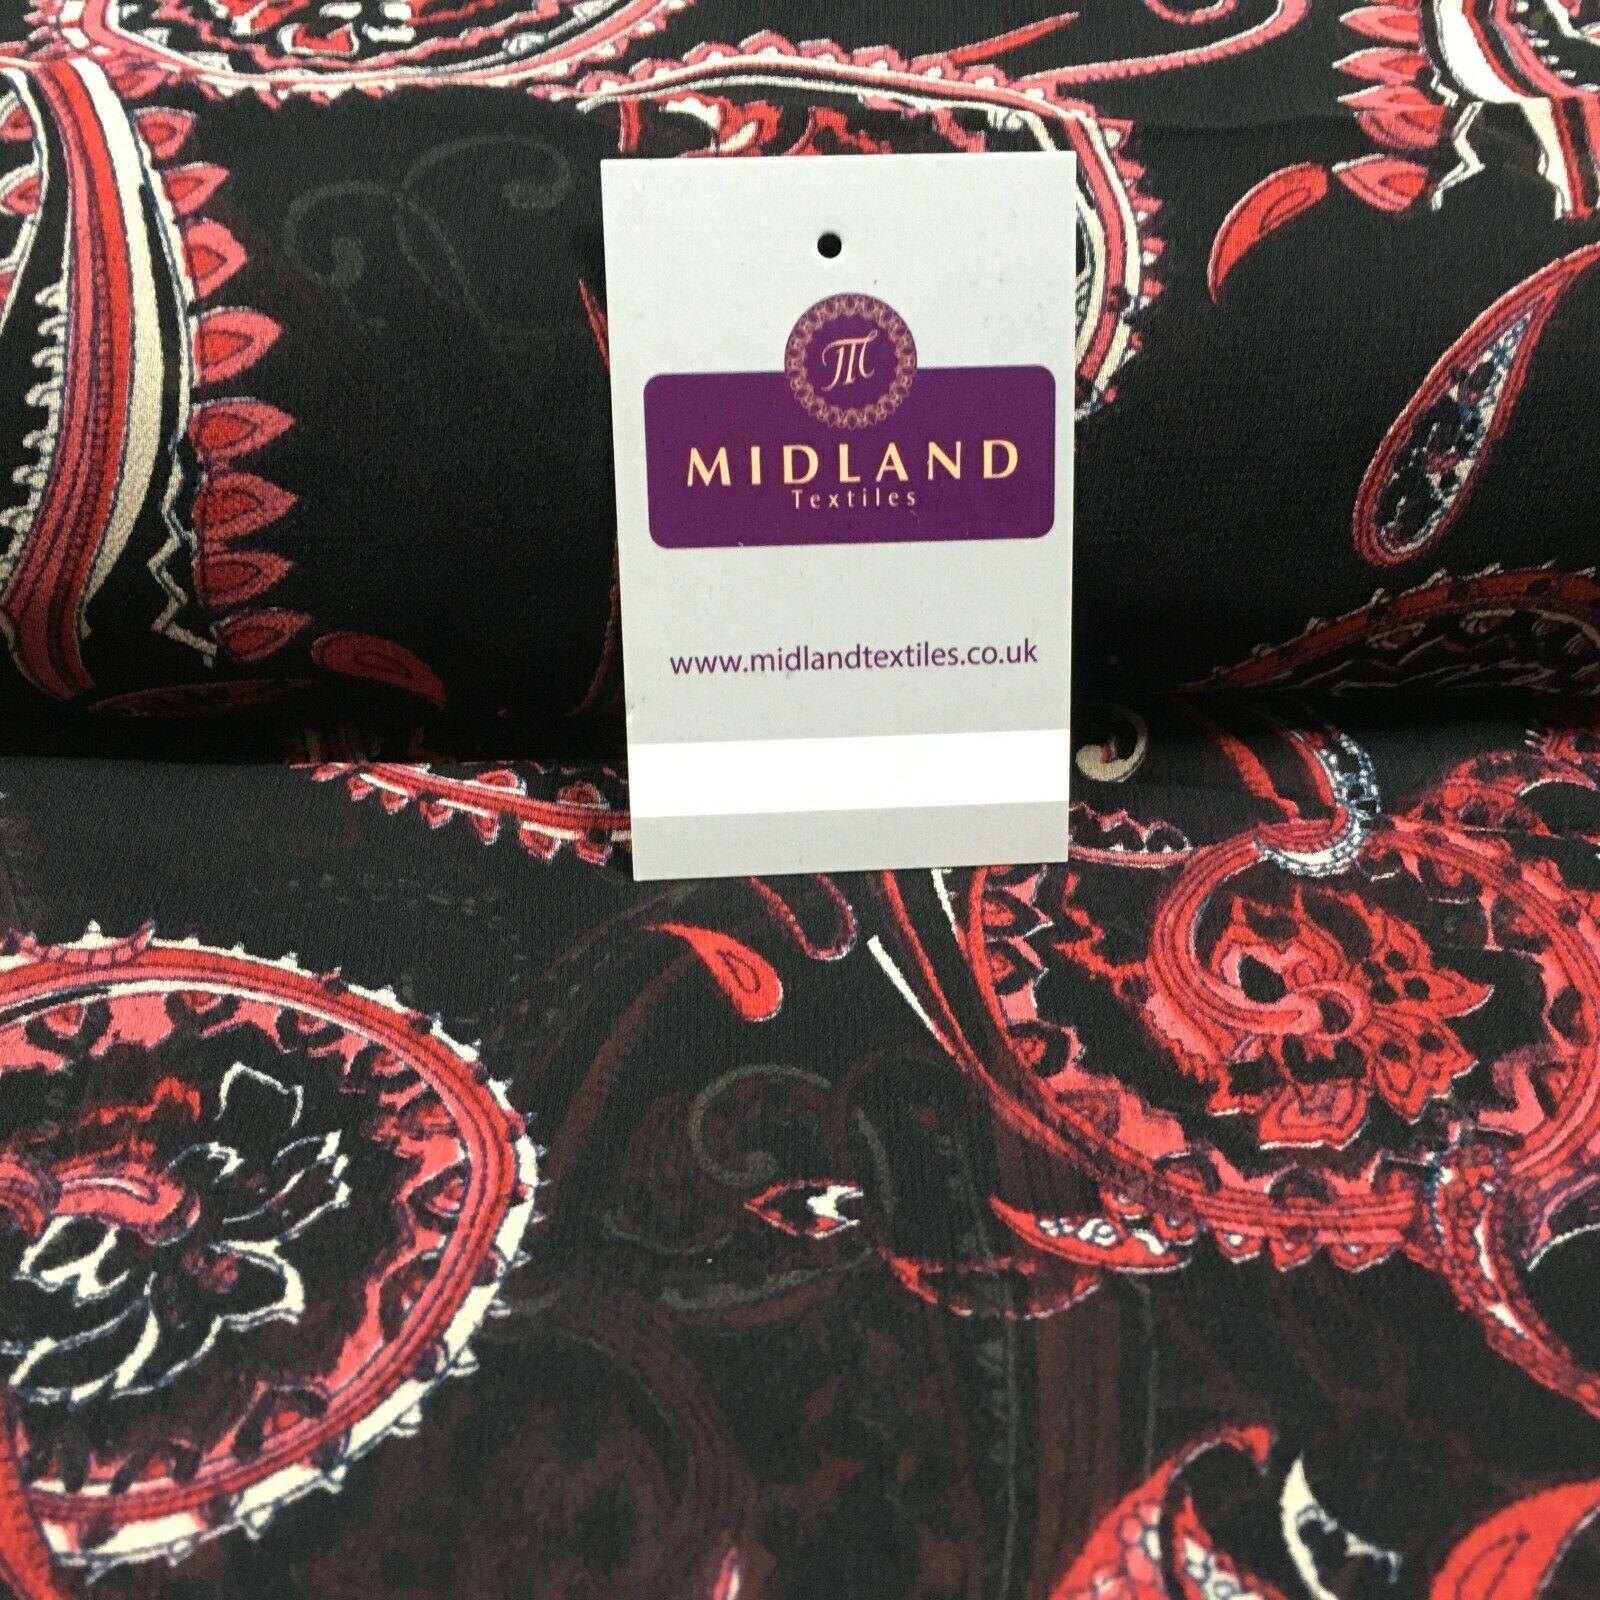 Black Red Paisley Crepe Printed Chiffon Fabric 110 cm Wide M1358-1 Mtex